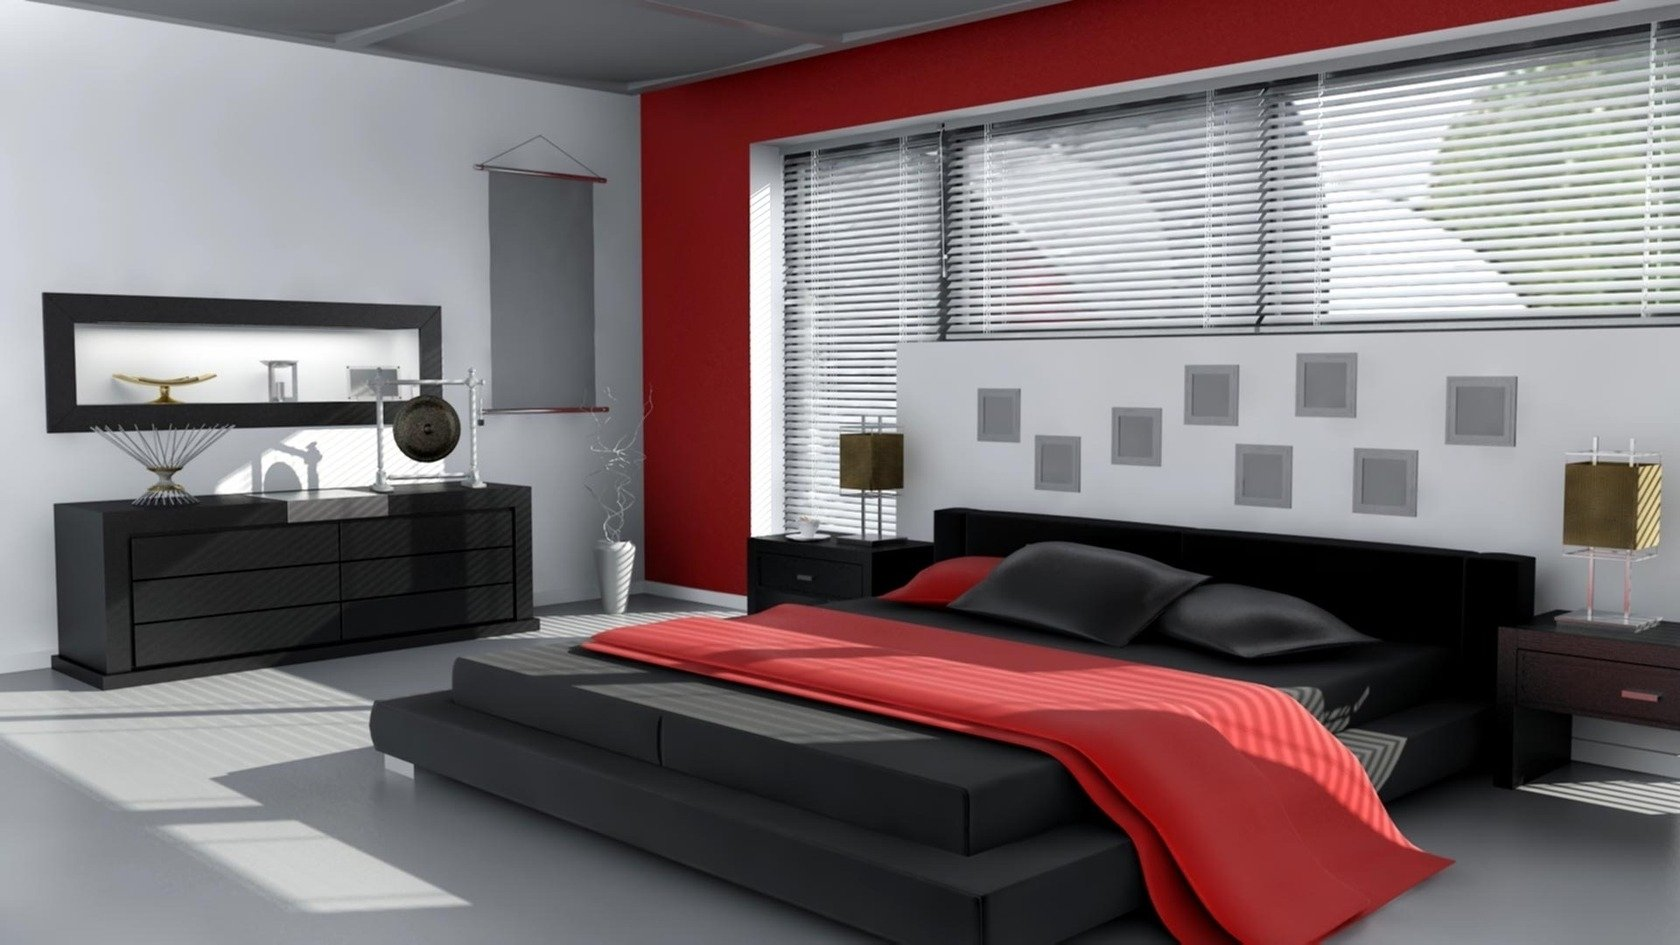 10 Trendy Red And Black Room Ideas red white and black bedroom decobizz 1 2021